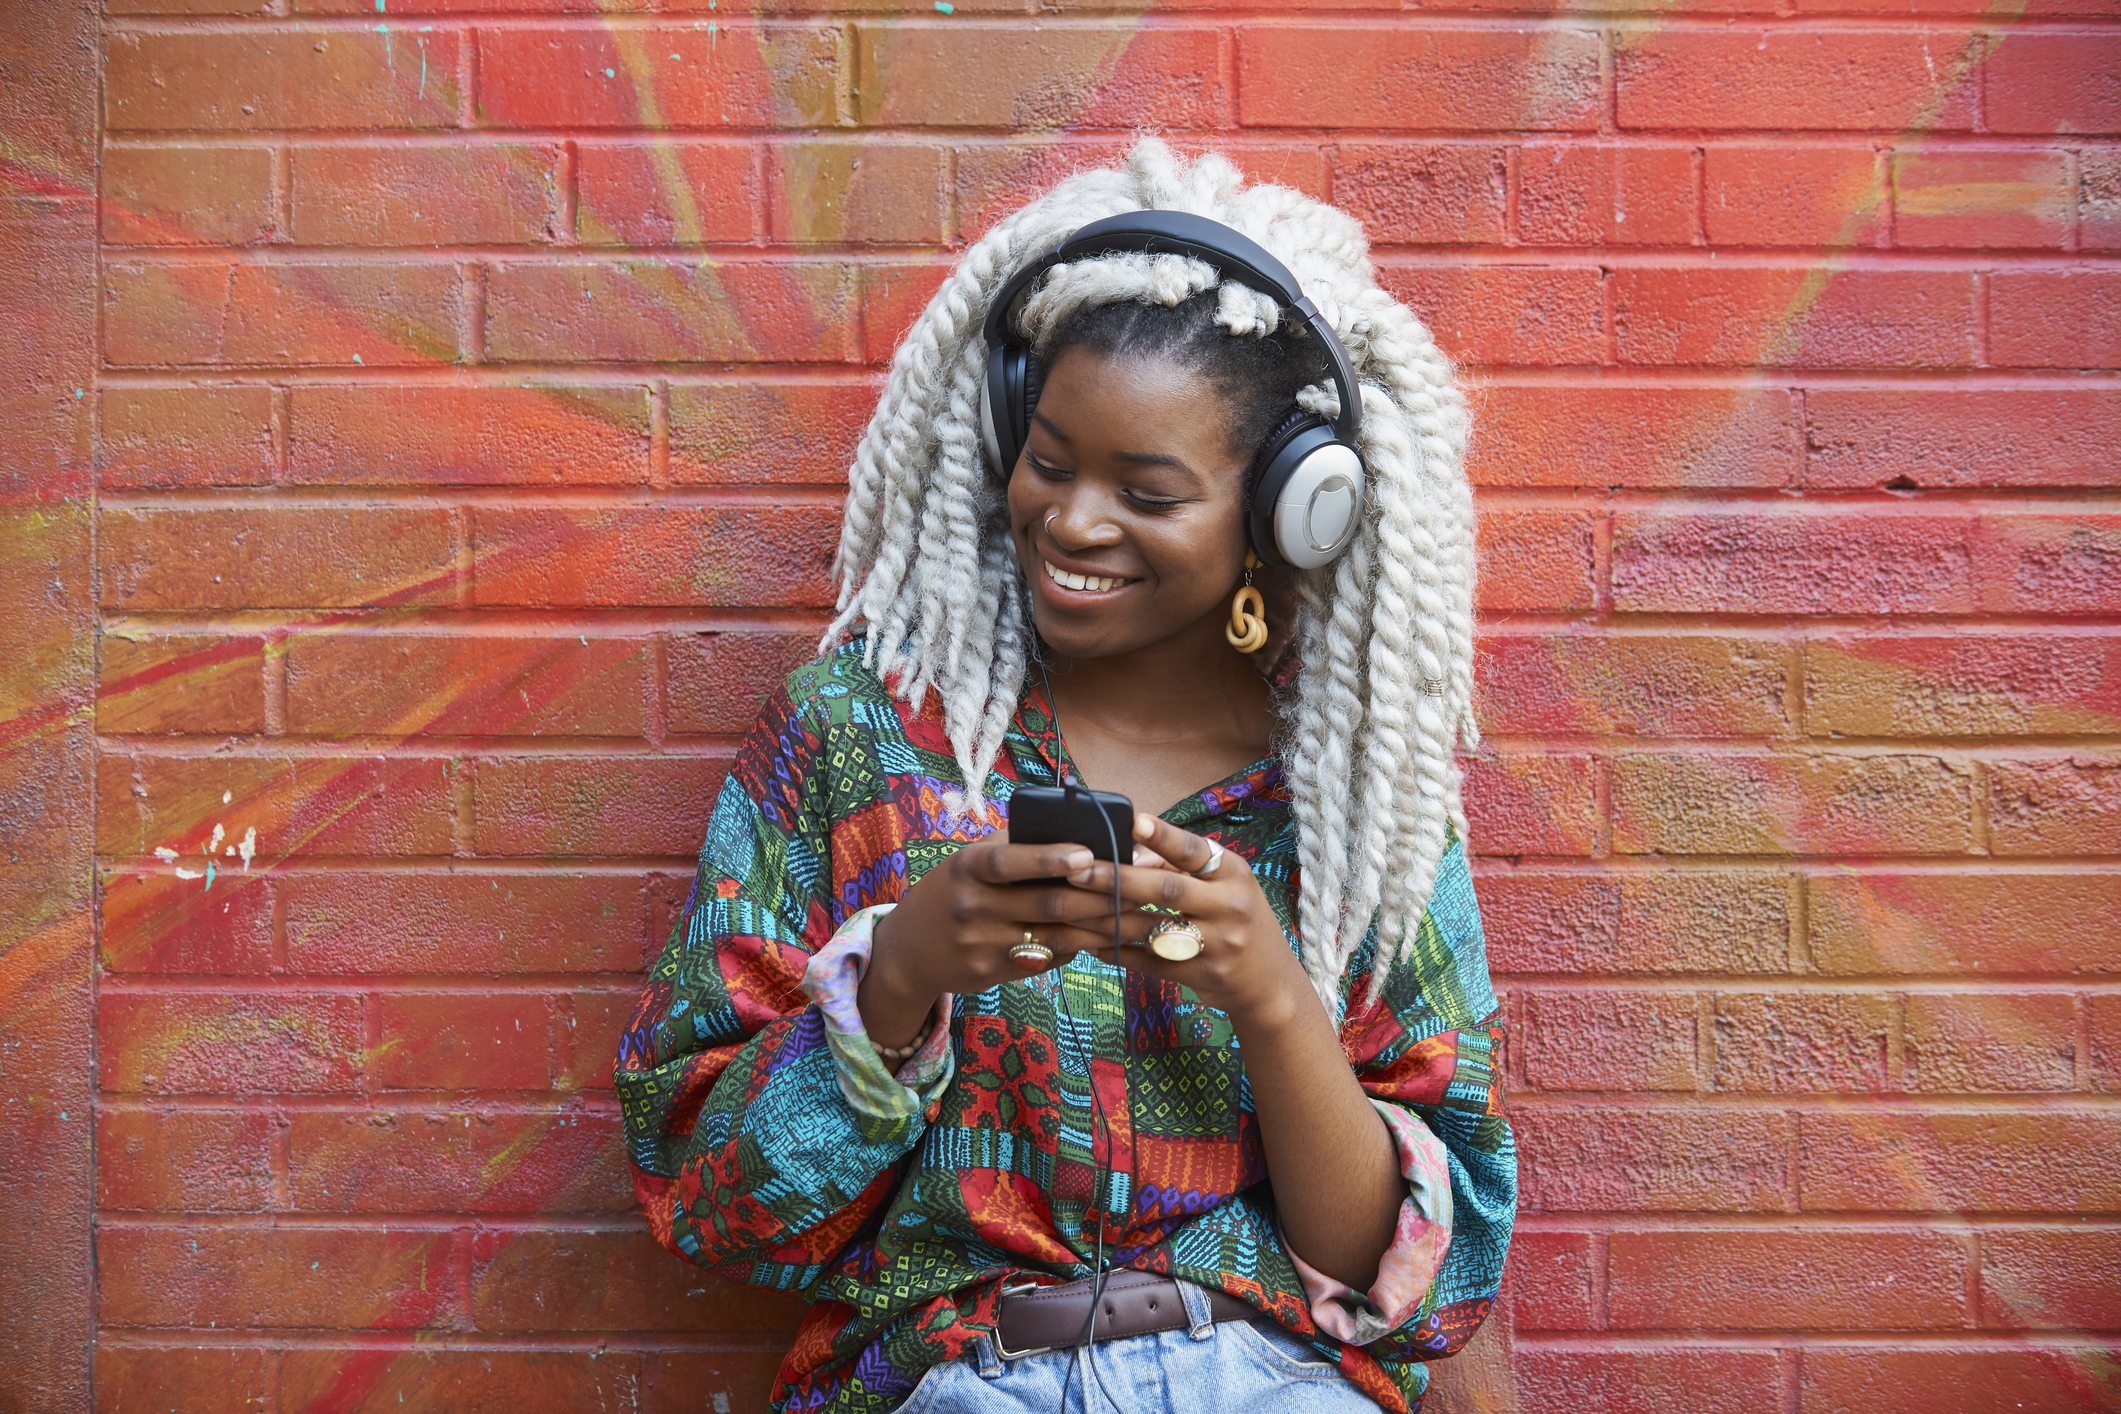 Black woman leaning on brick wall listening to cell phone with headphones